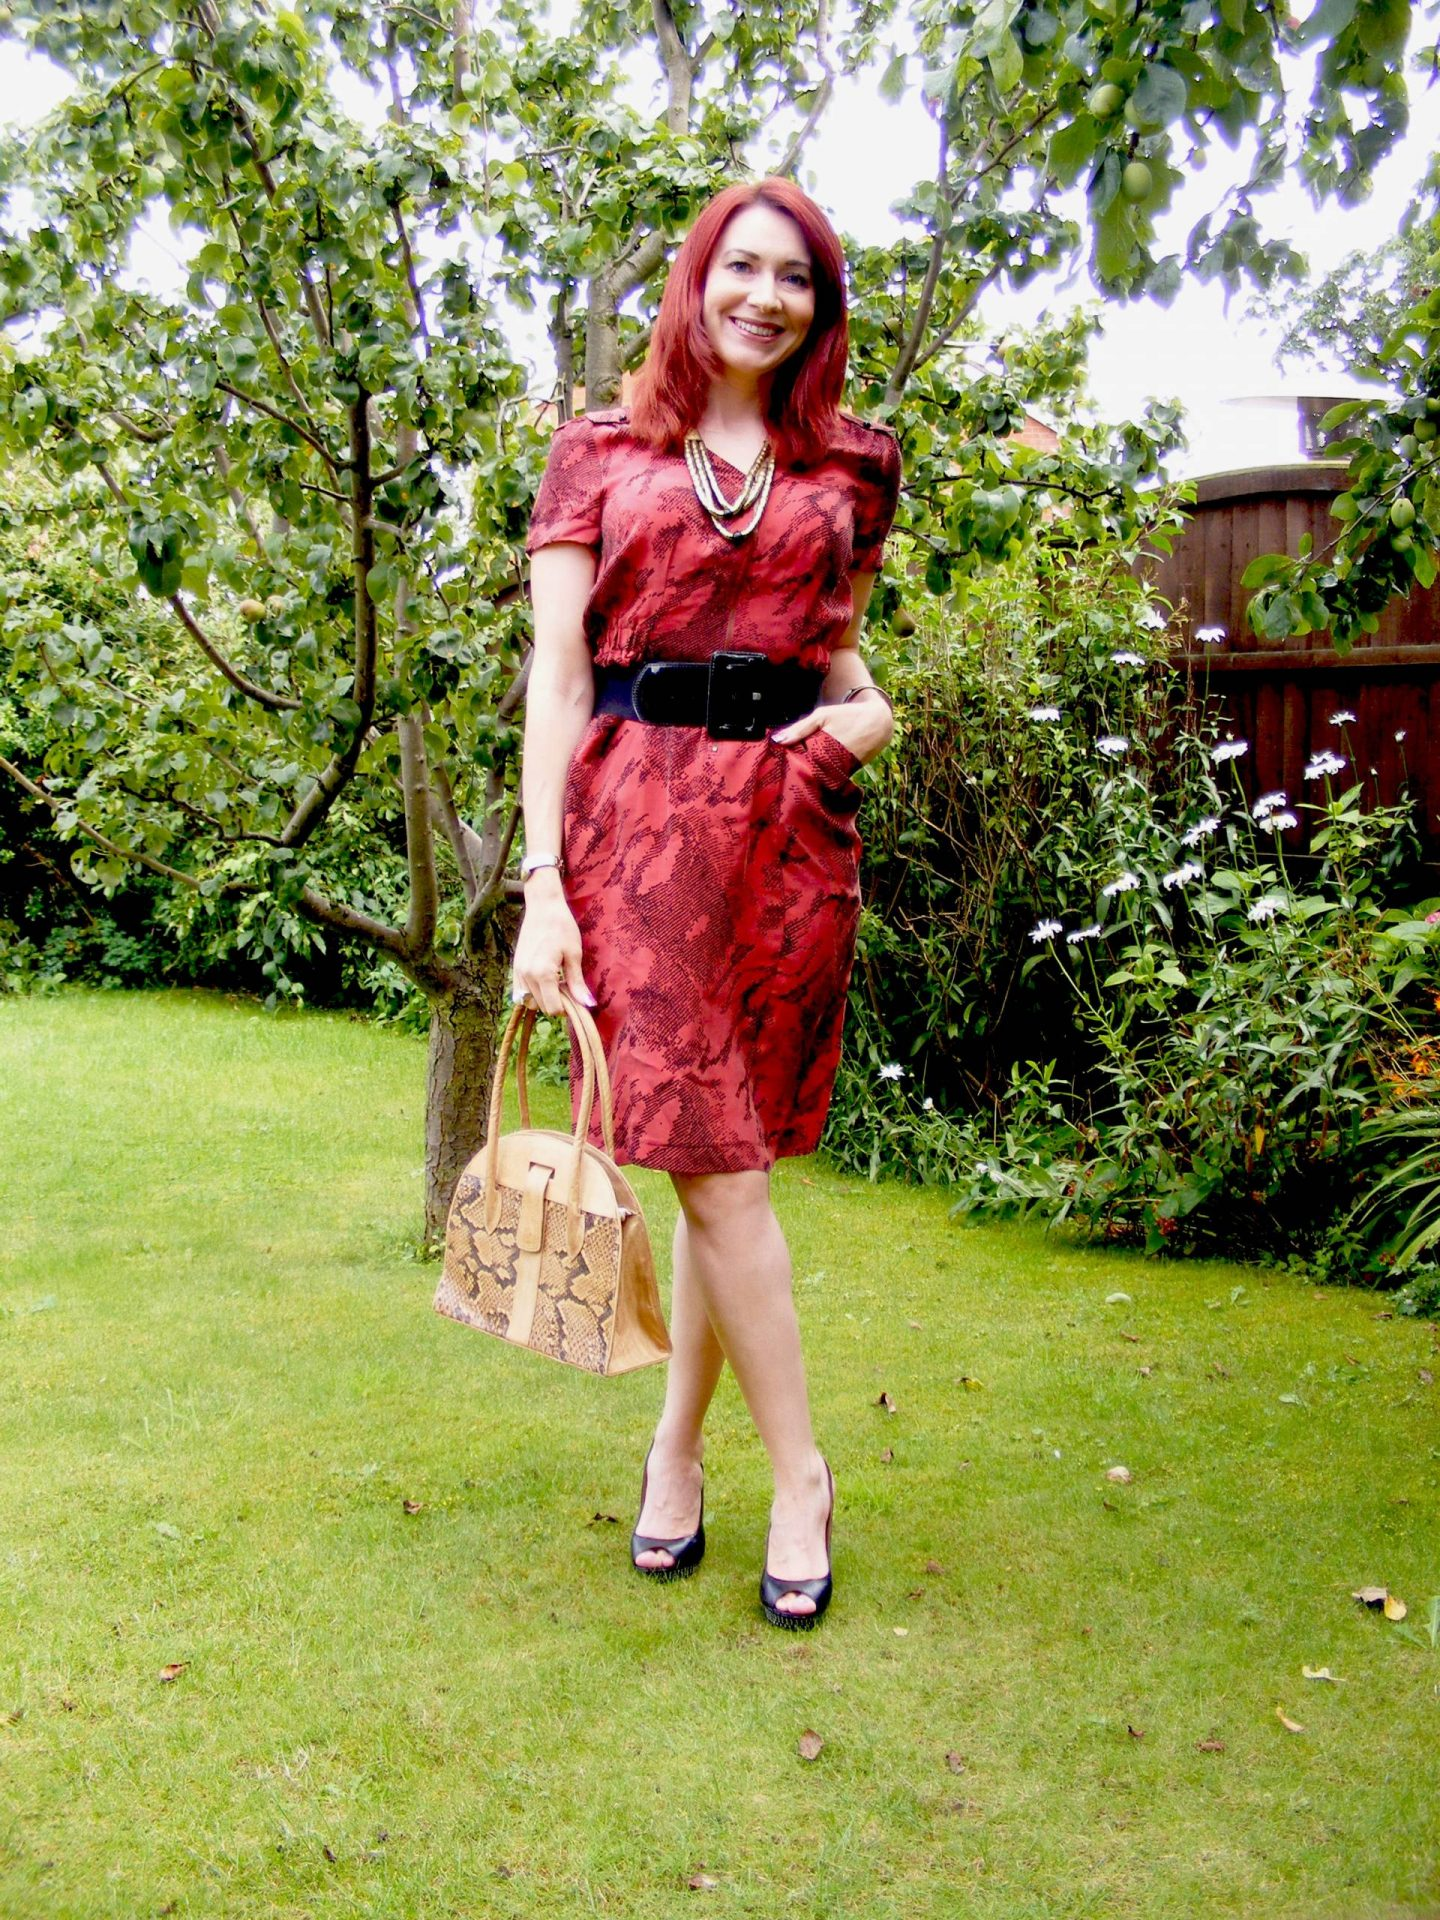 Bargain Chic - Marks and Spencer Dress For a Fiver!